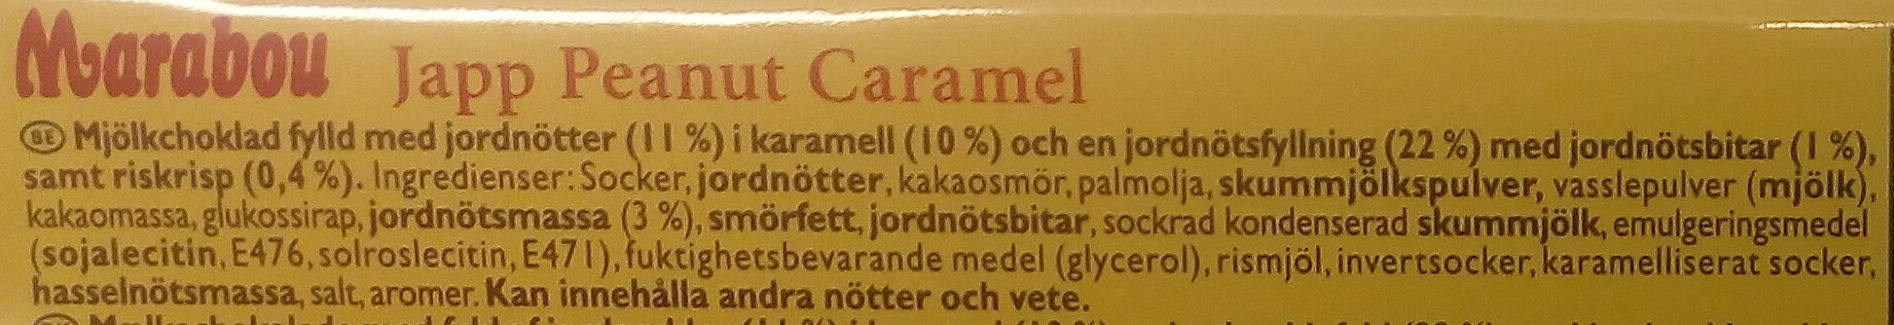 Marabou japp peanut caramel - Ingredients